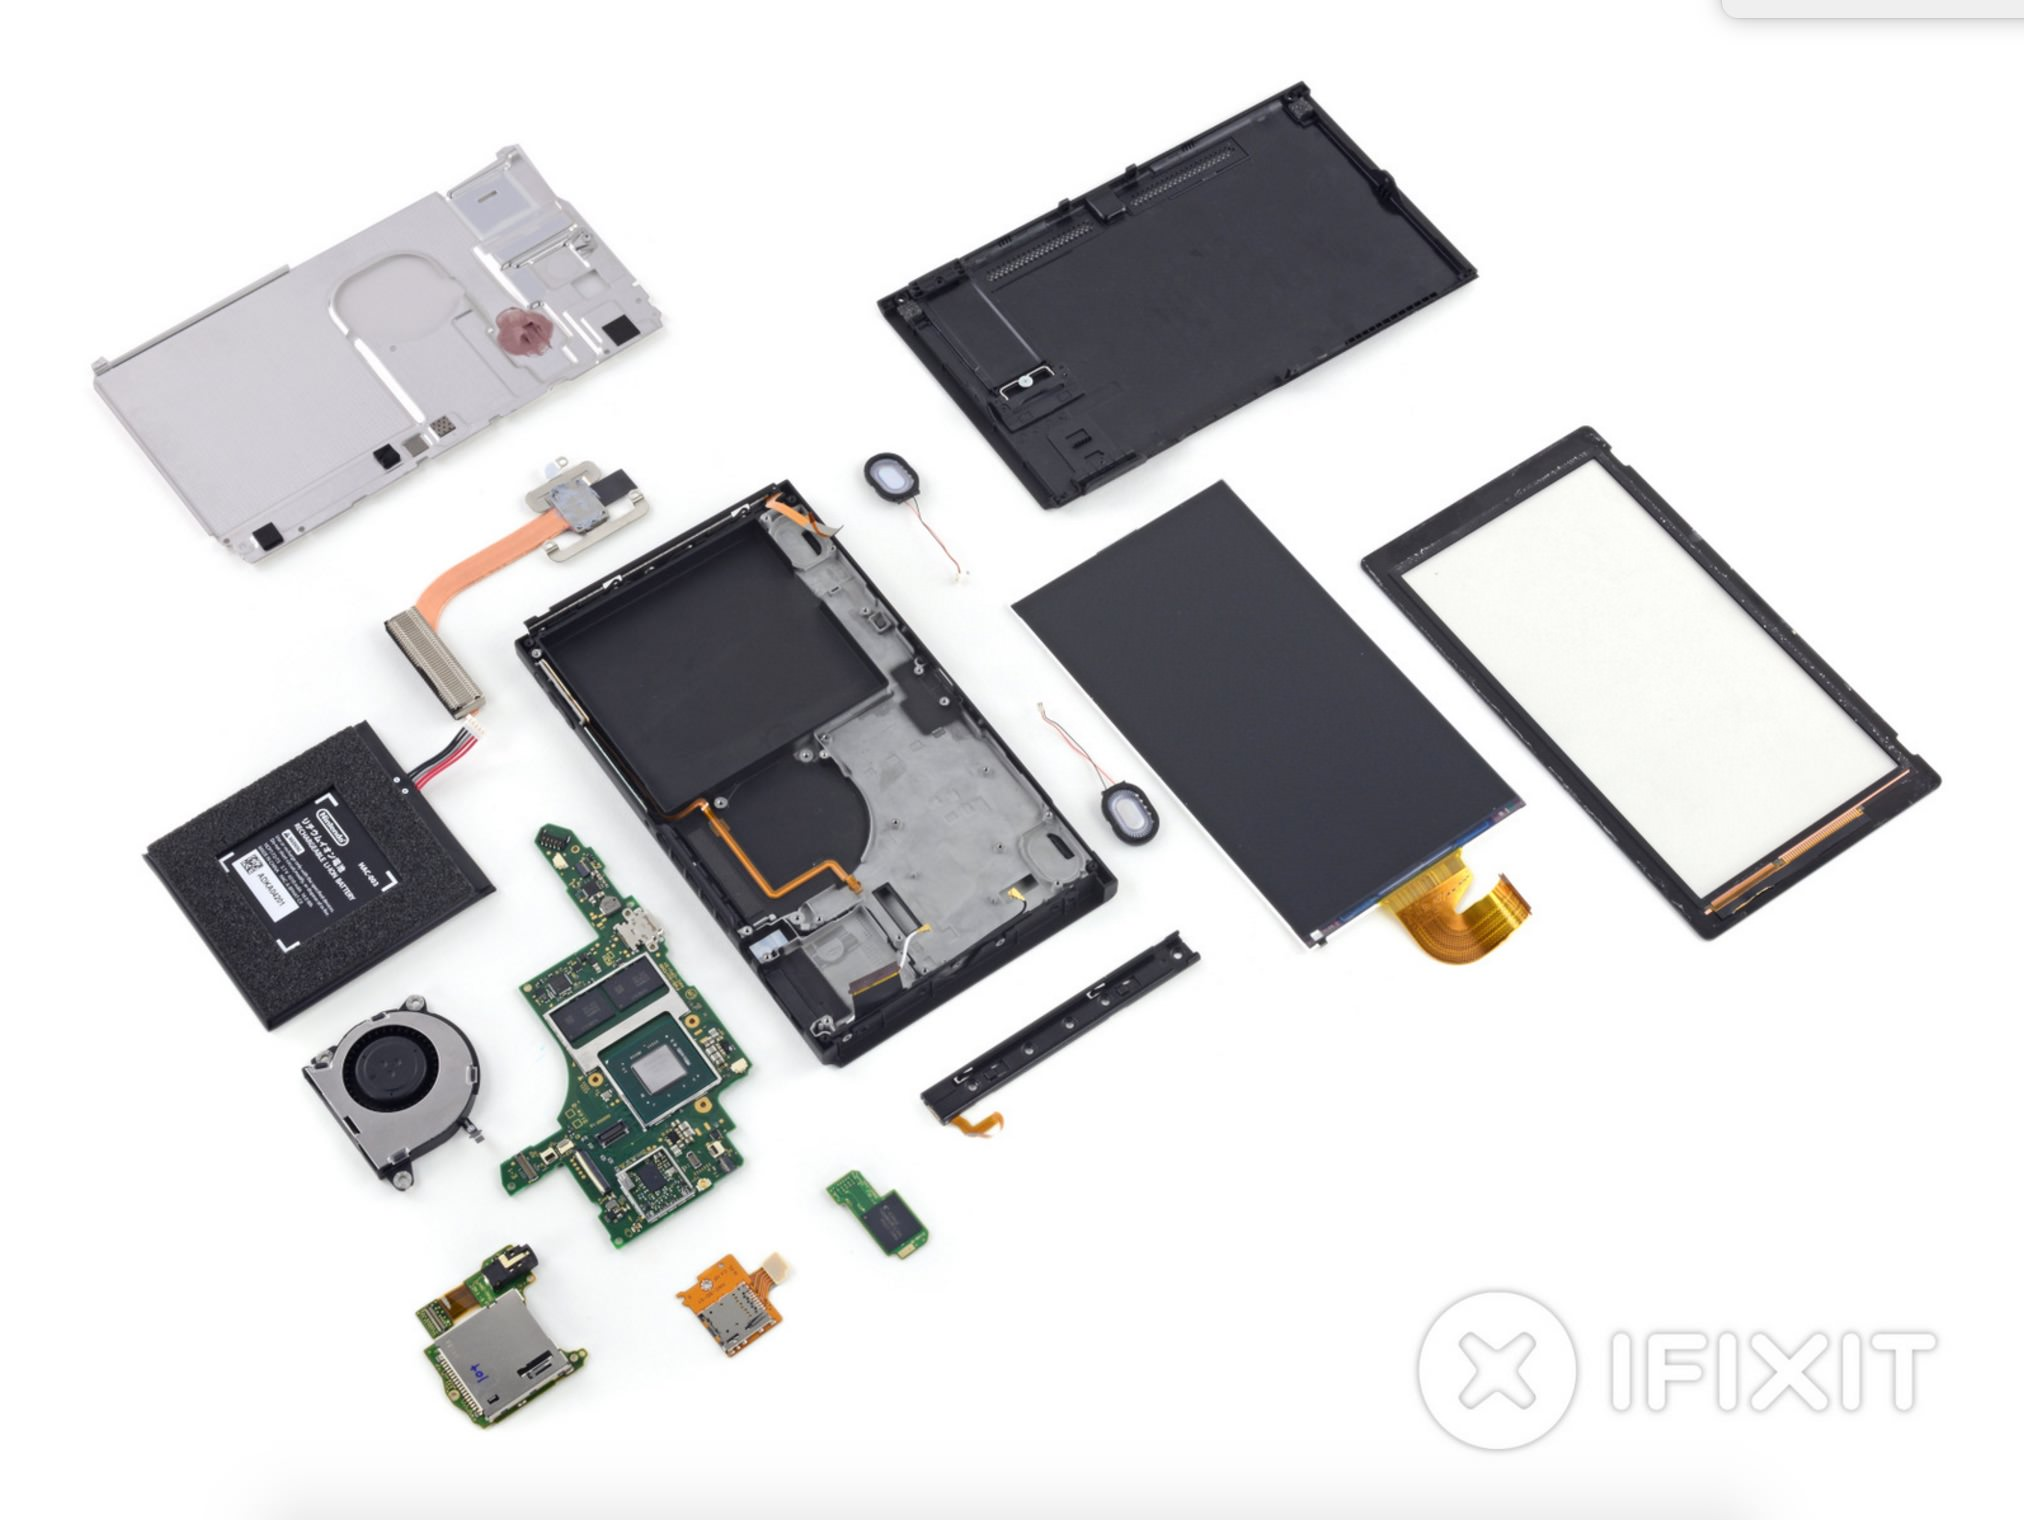 Switch tablet disassembled